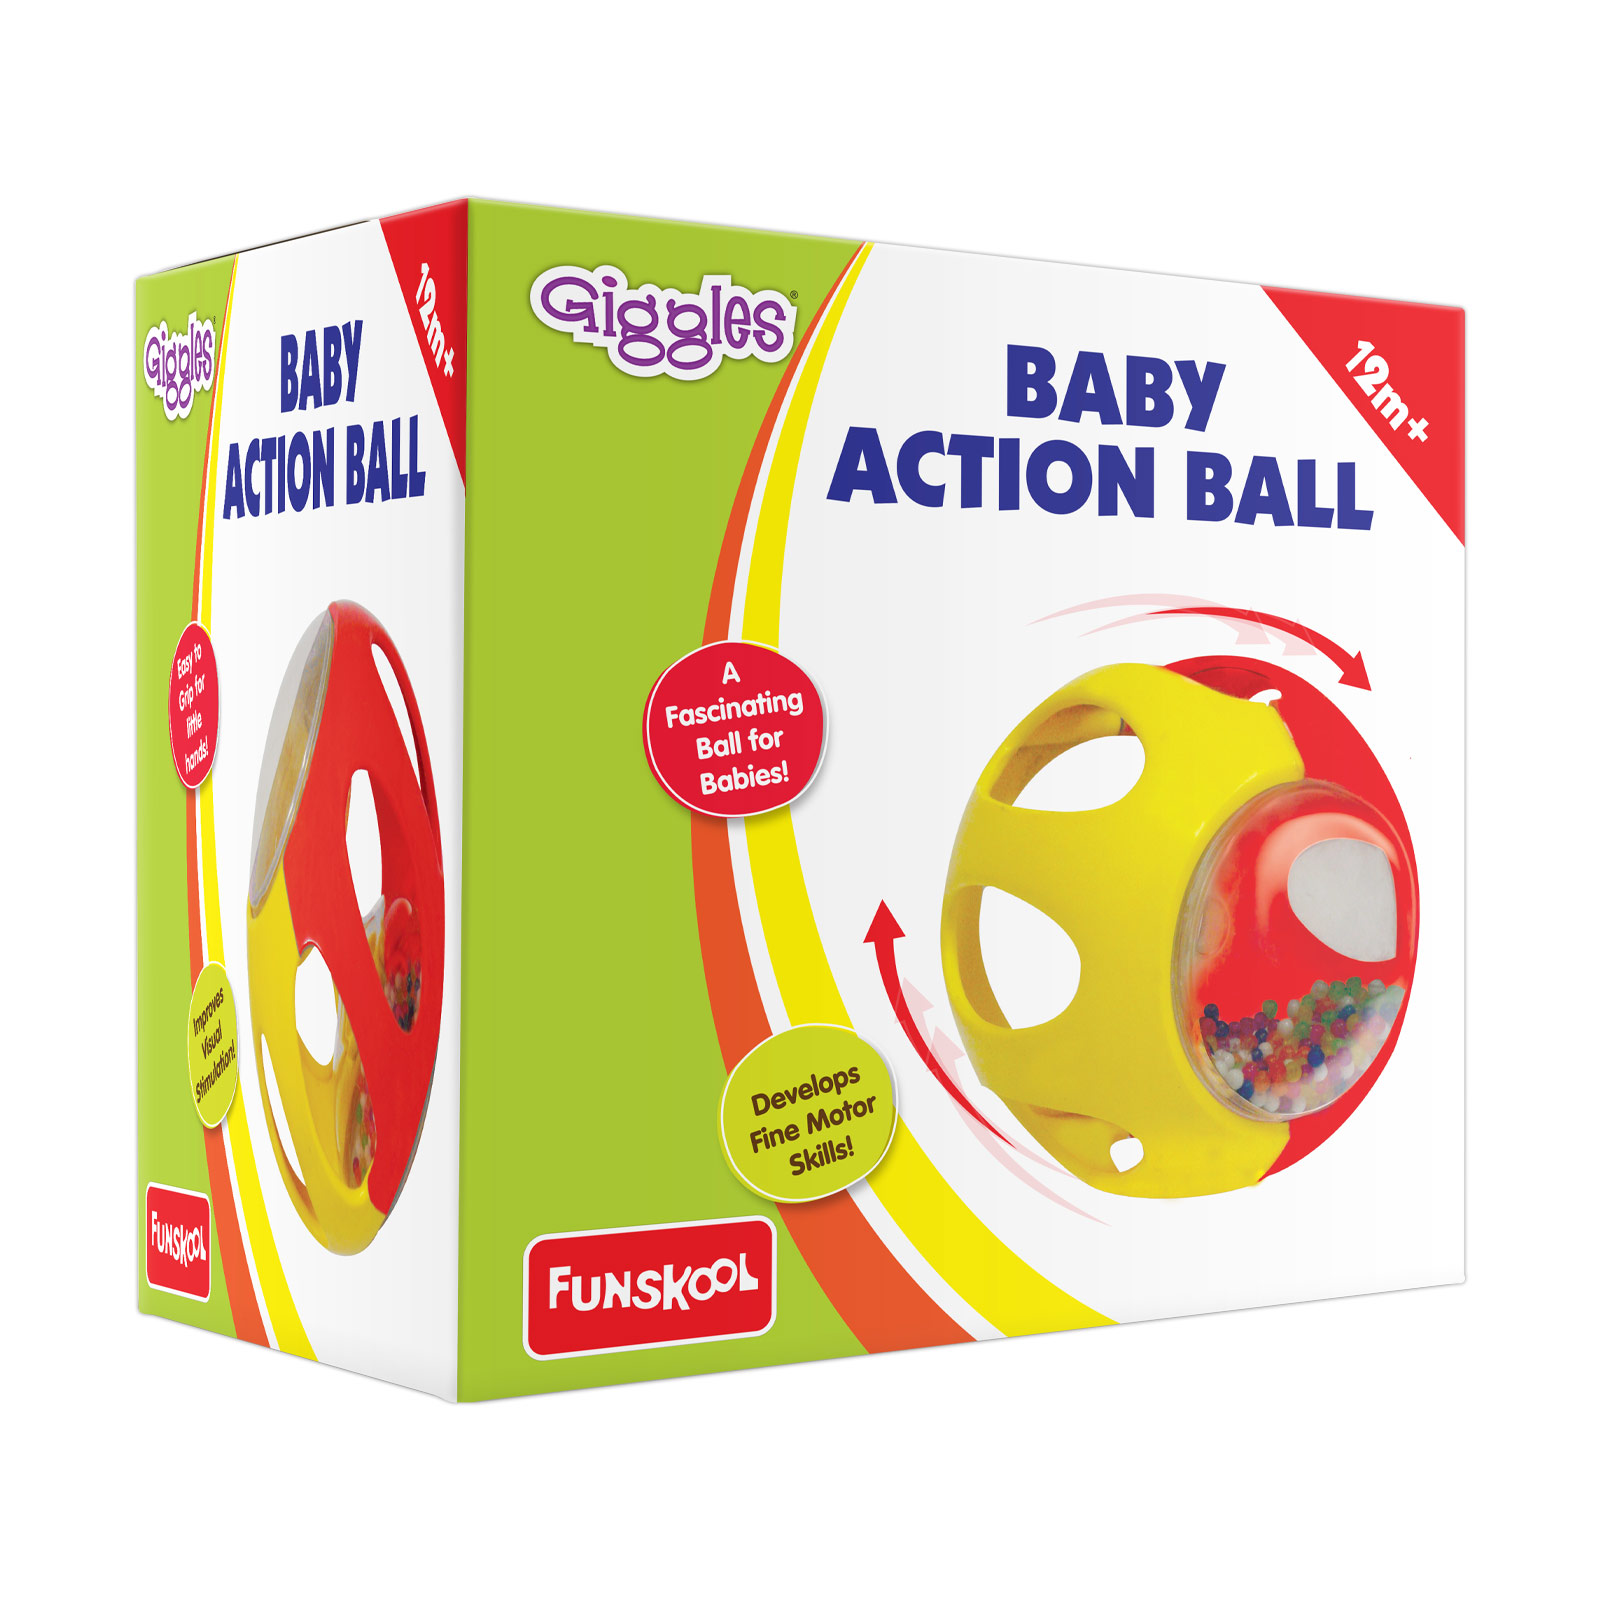 Baby Action Ball